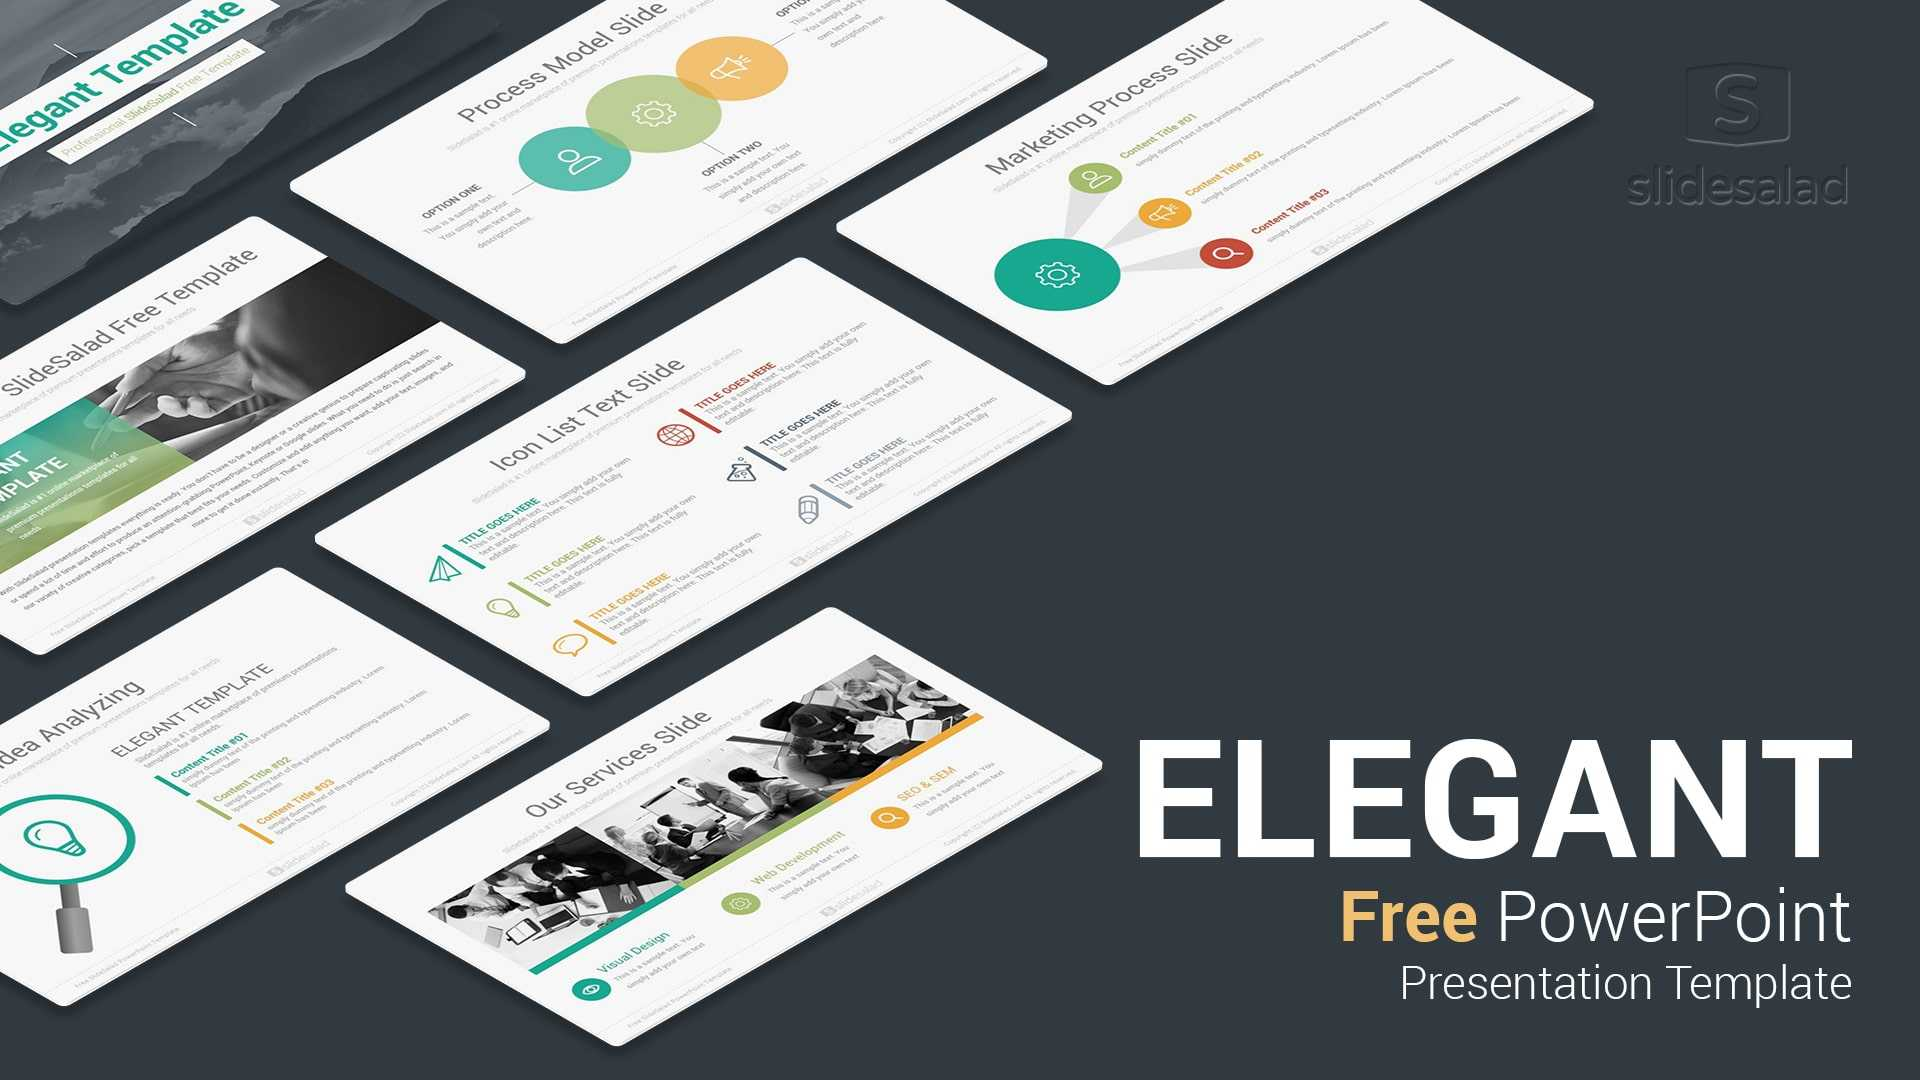 Elegant Free Download Powerpoint Templates For Presentation Regarding Free Powerpoint Presentation Templates Downloads